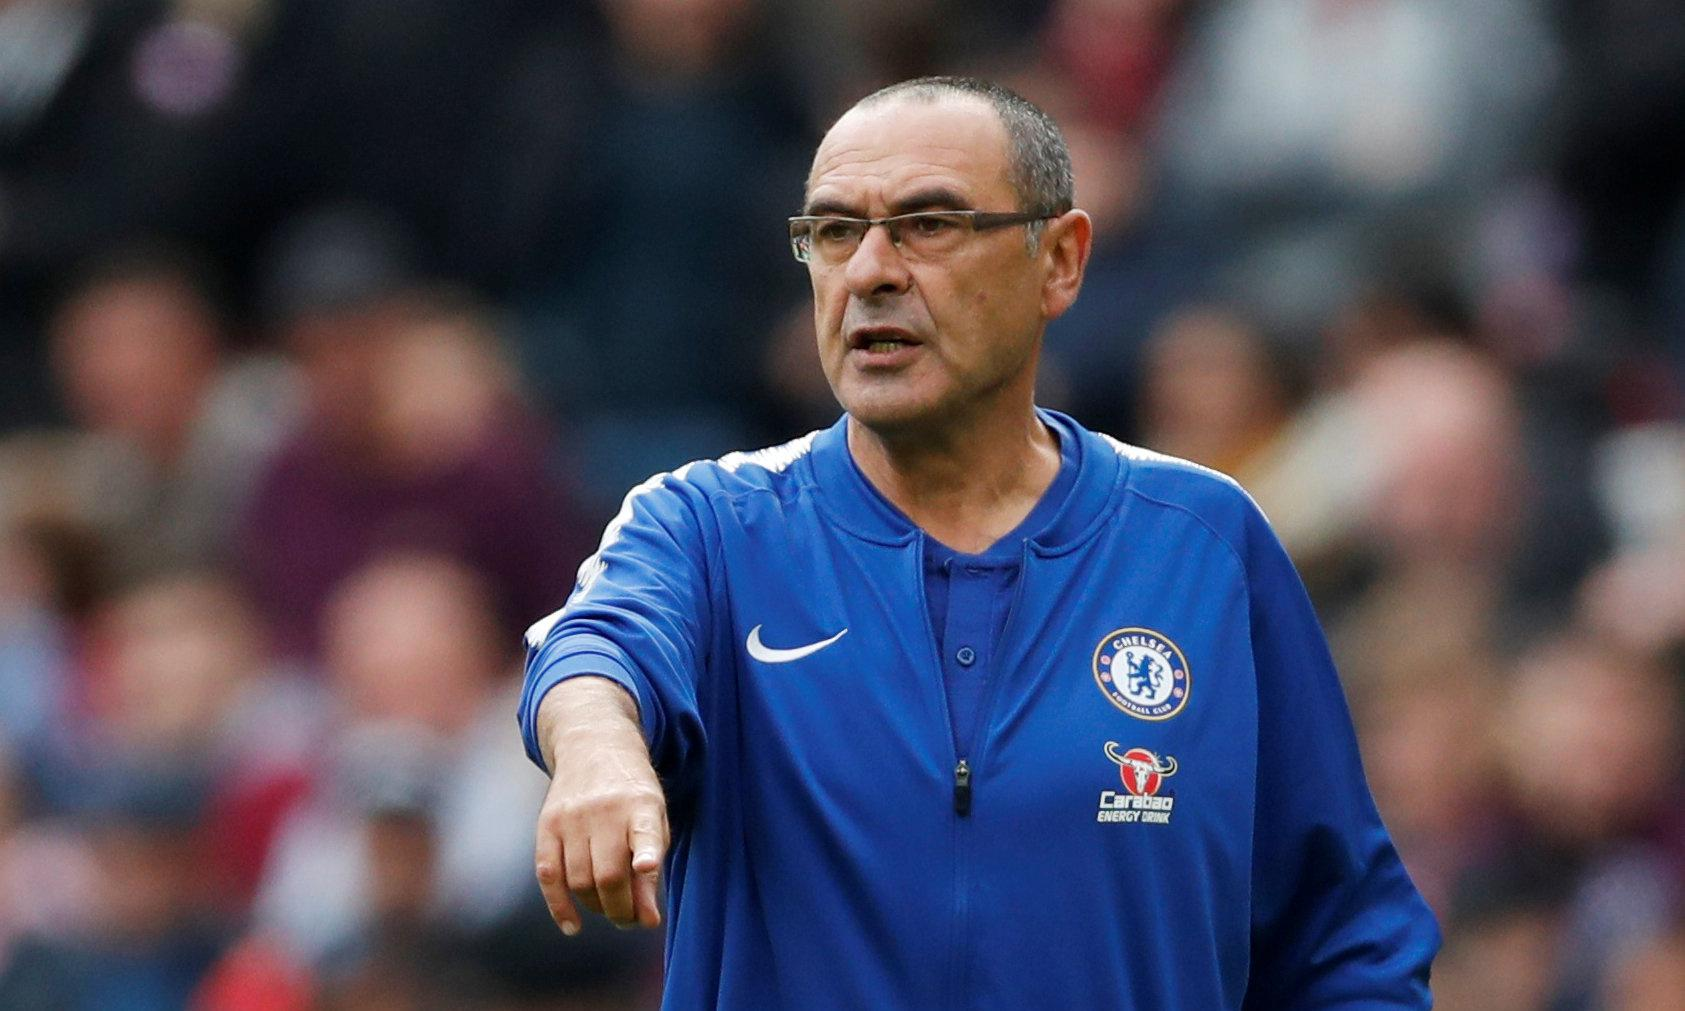 Chelsea not at same level as Liverpool, says Maurizio Sarri